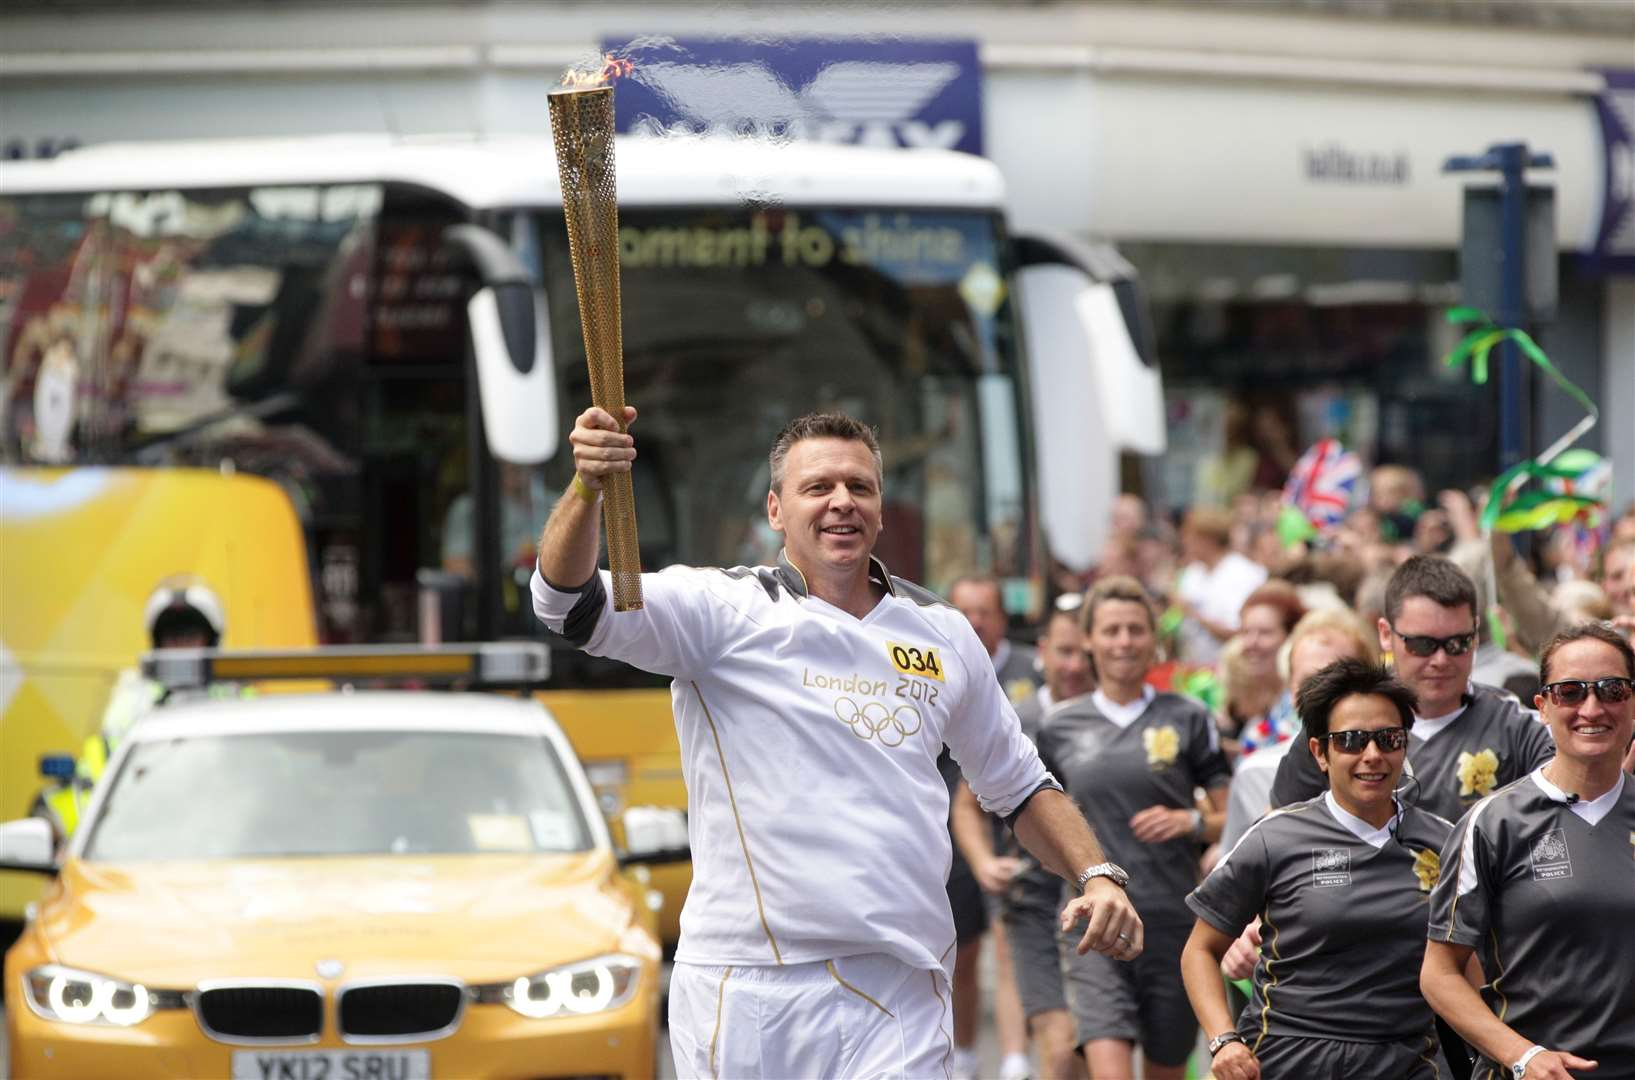 Former Olympian Steve Backley carries the flame at Ramsgate. Pic: Locog